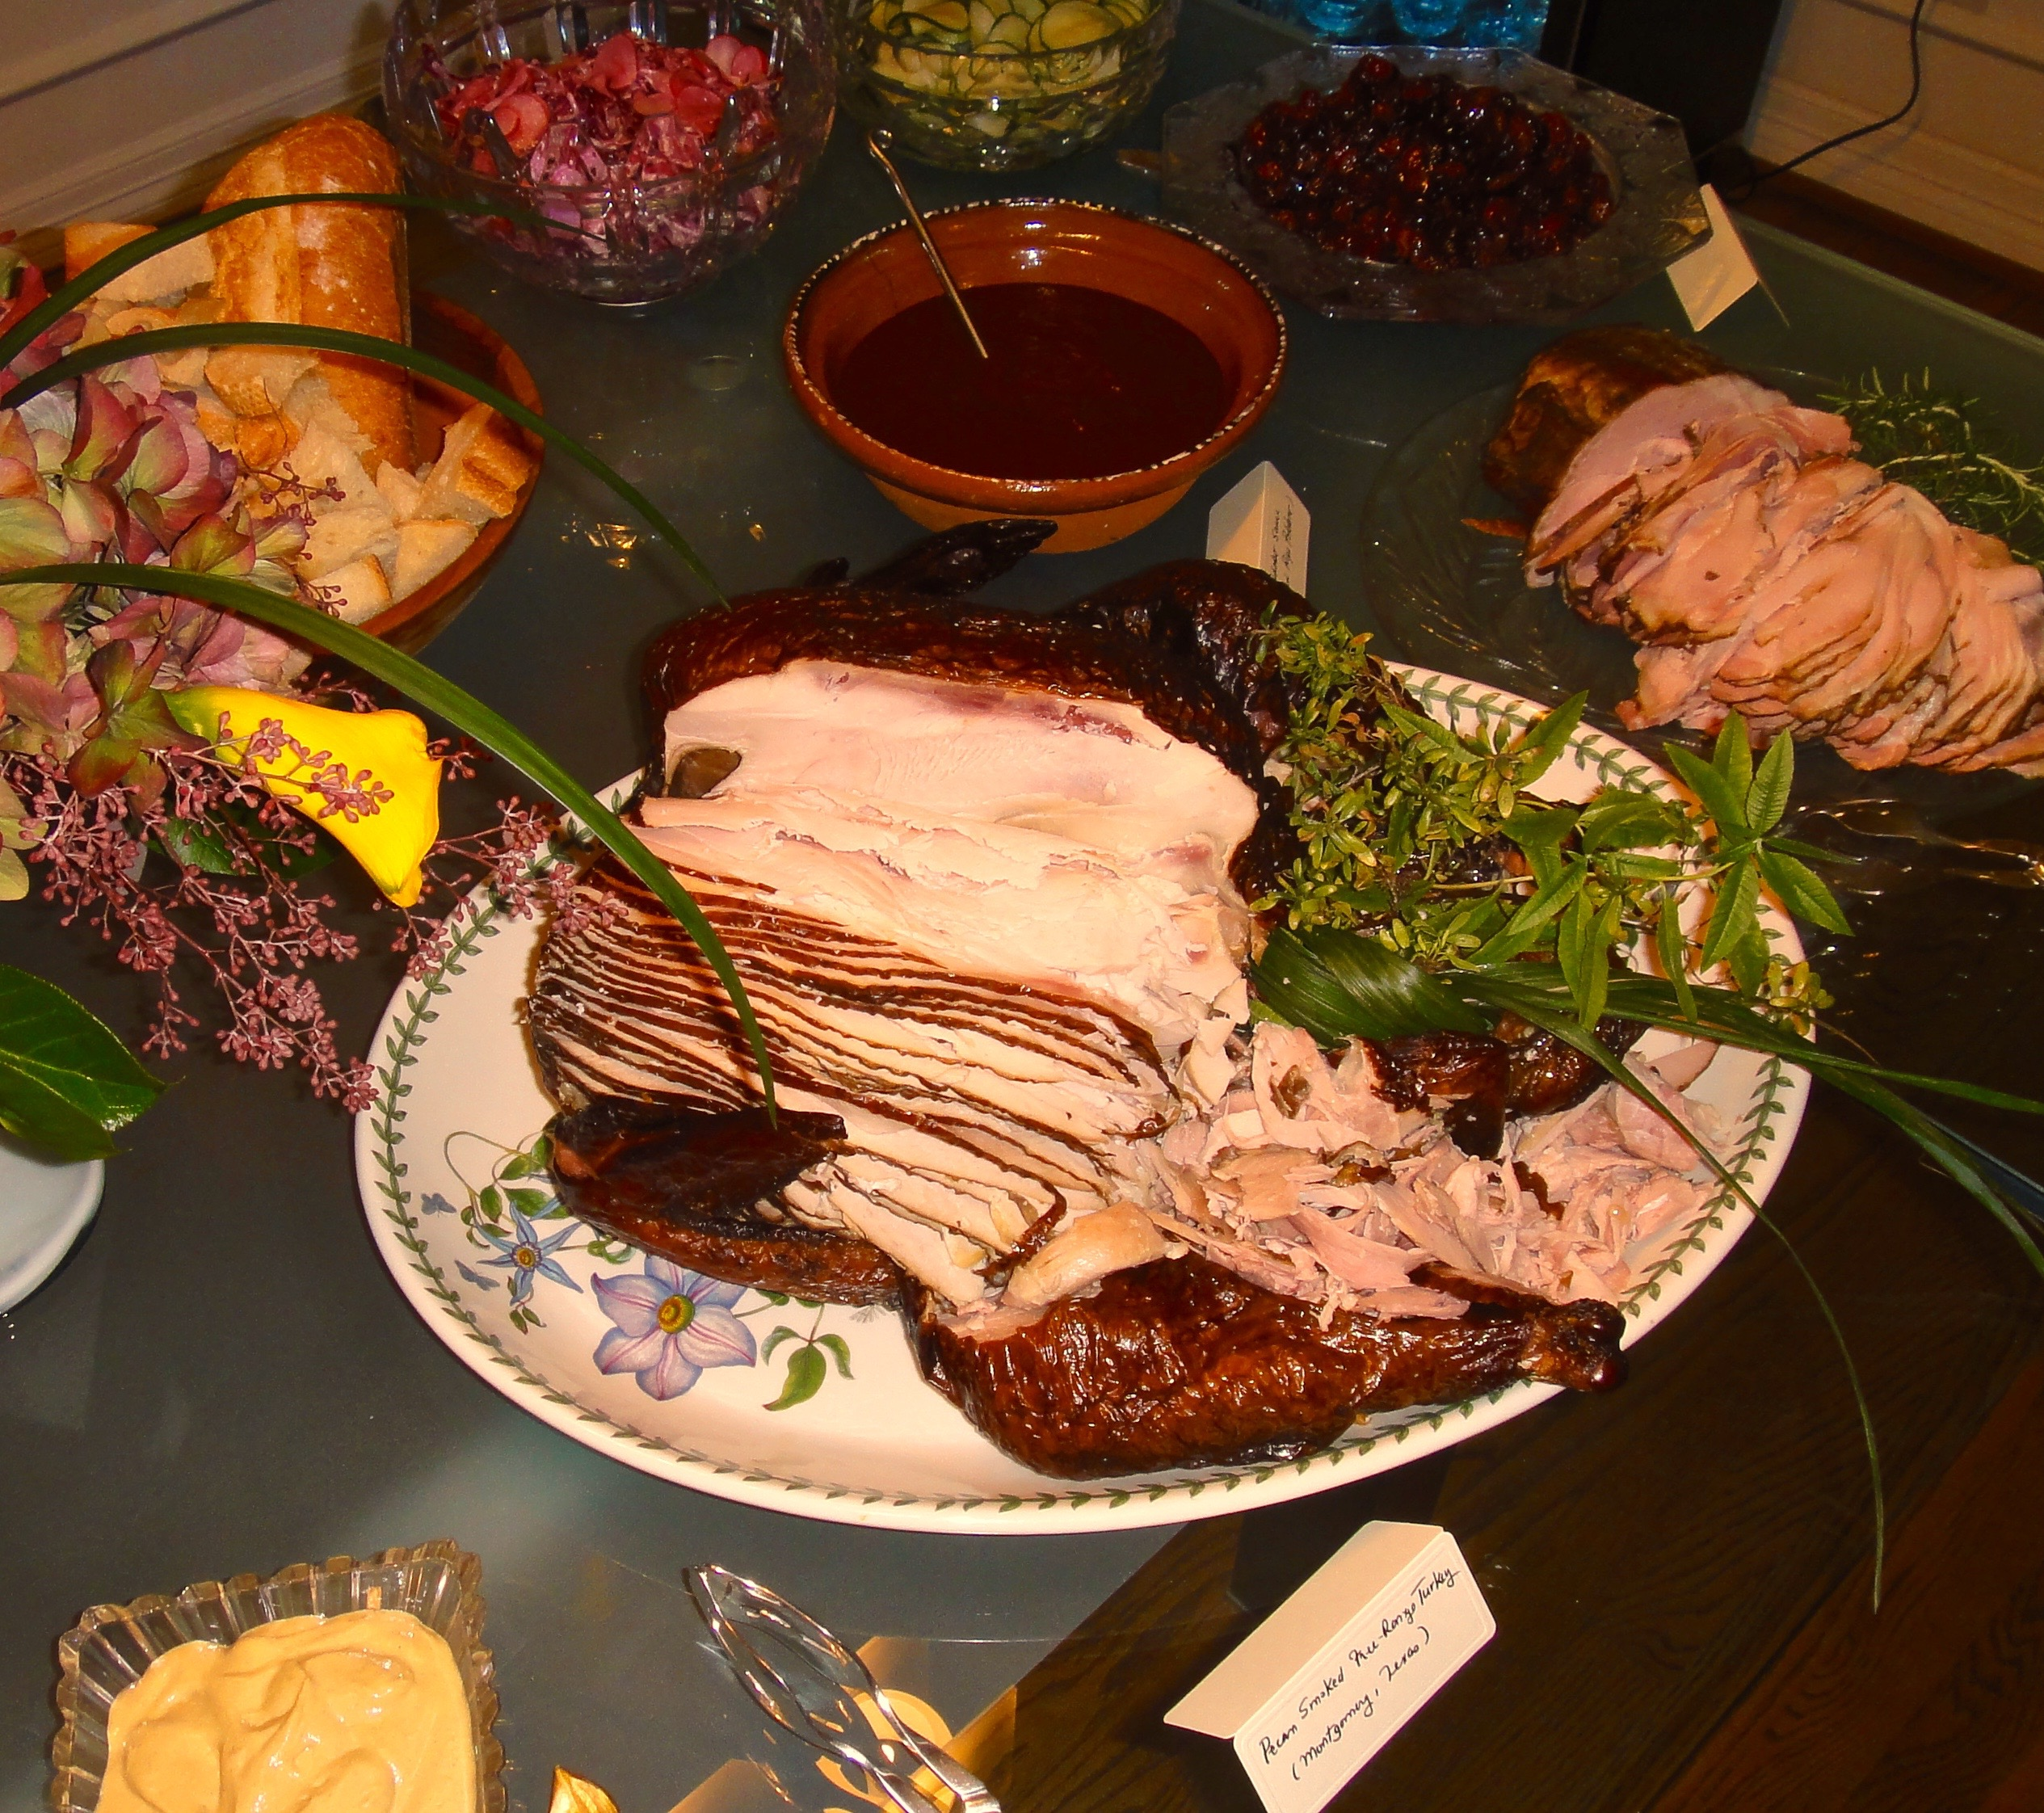 Sliced smoked turkey for Thanksgiving served with a Chile Ancho Adobo (bowl)